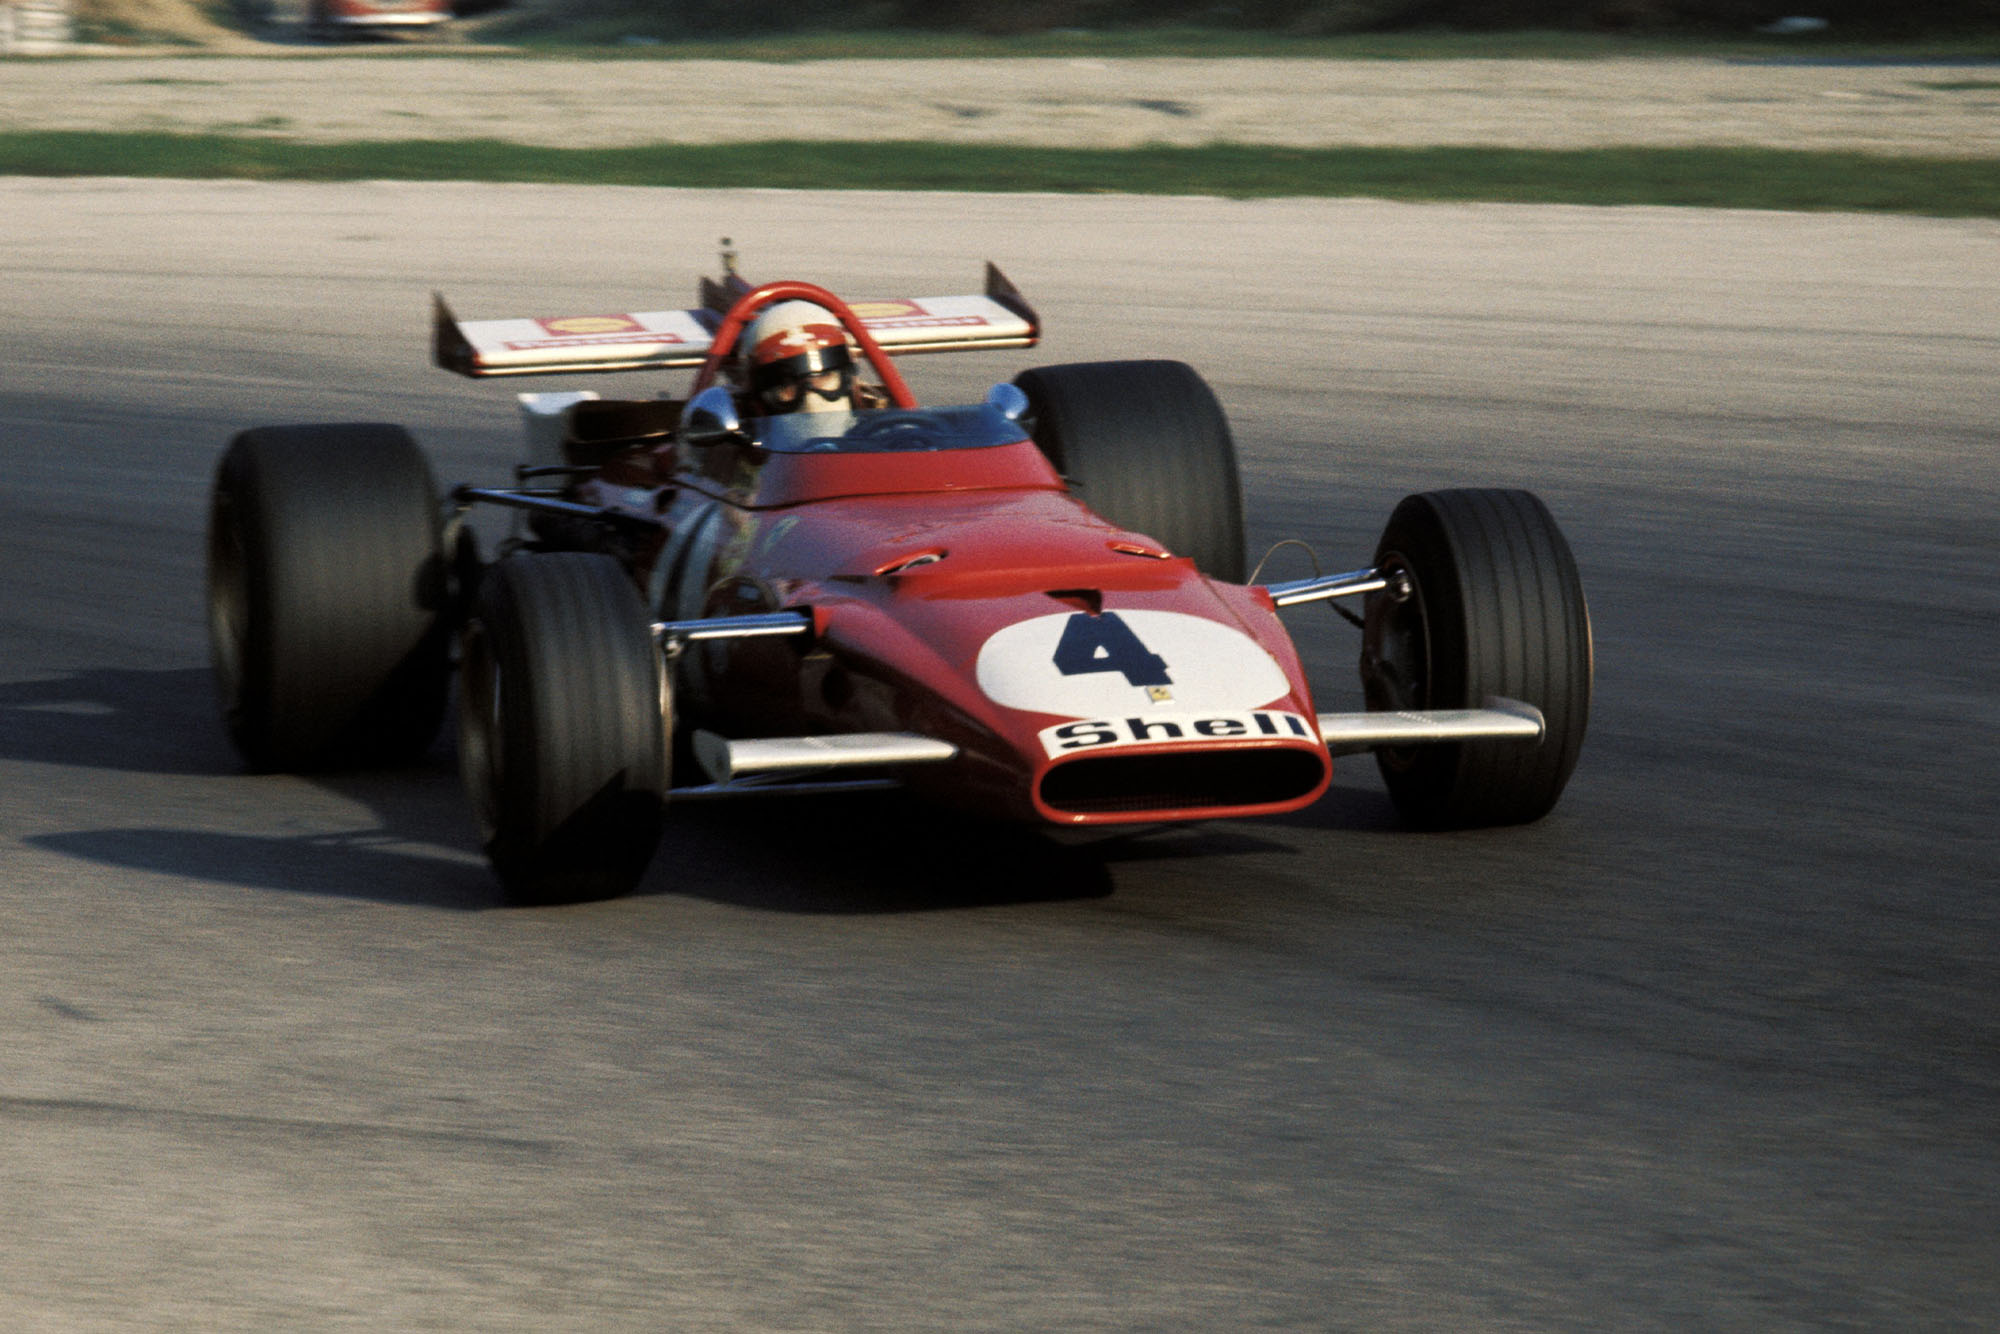 Clay Regazonni driving for Ferrari at the 1970 Italian Grand Prix